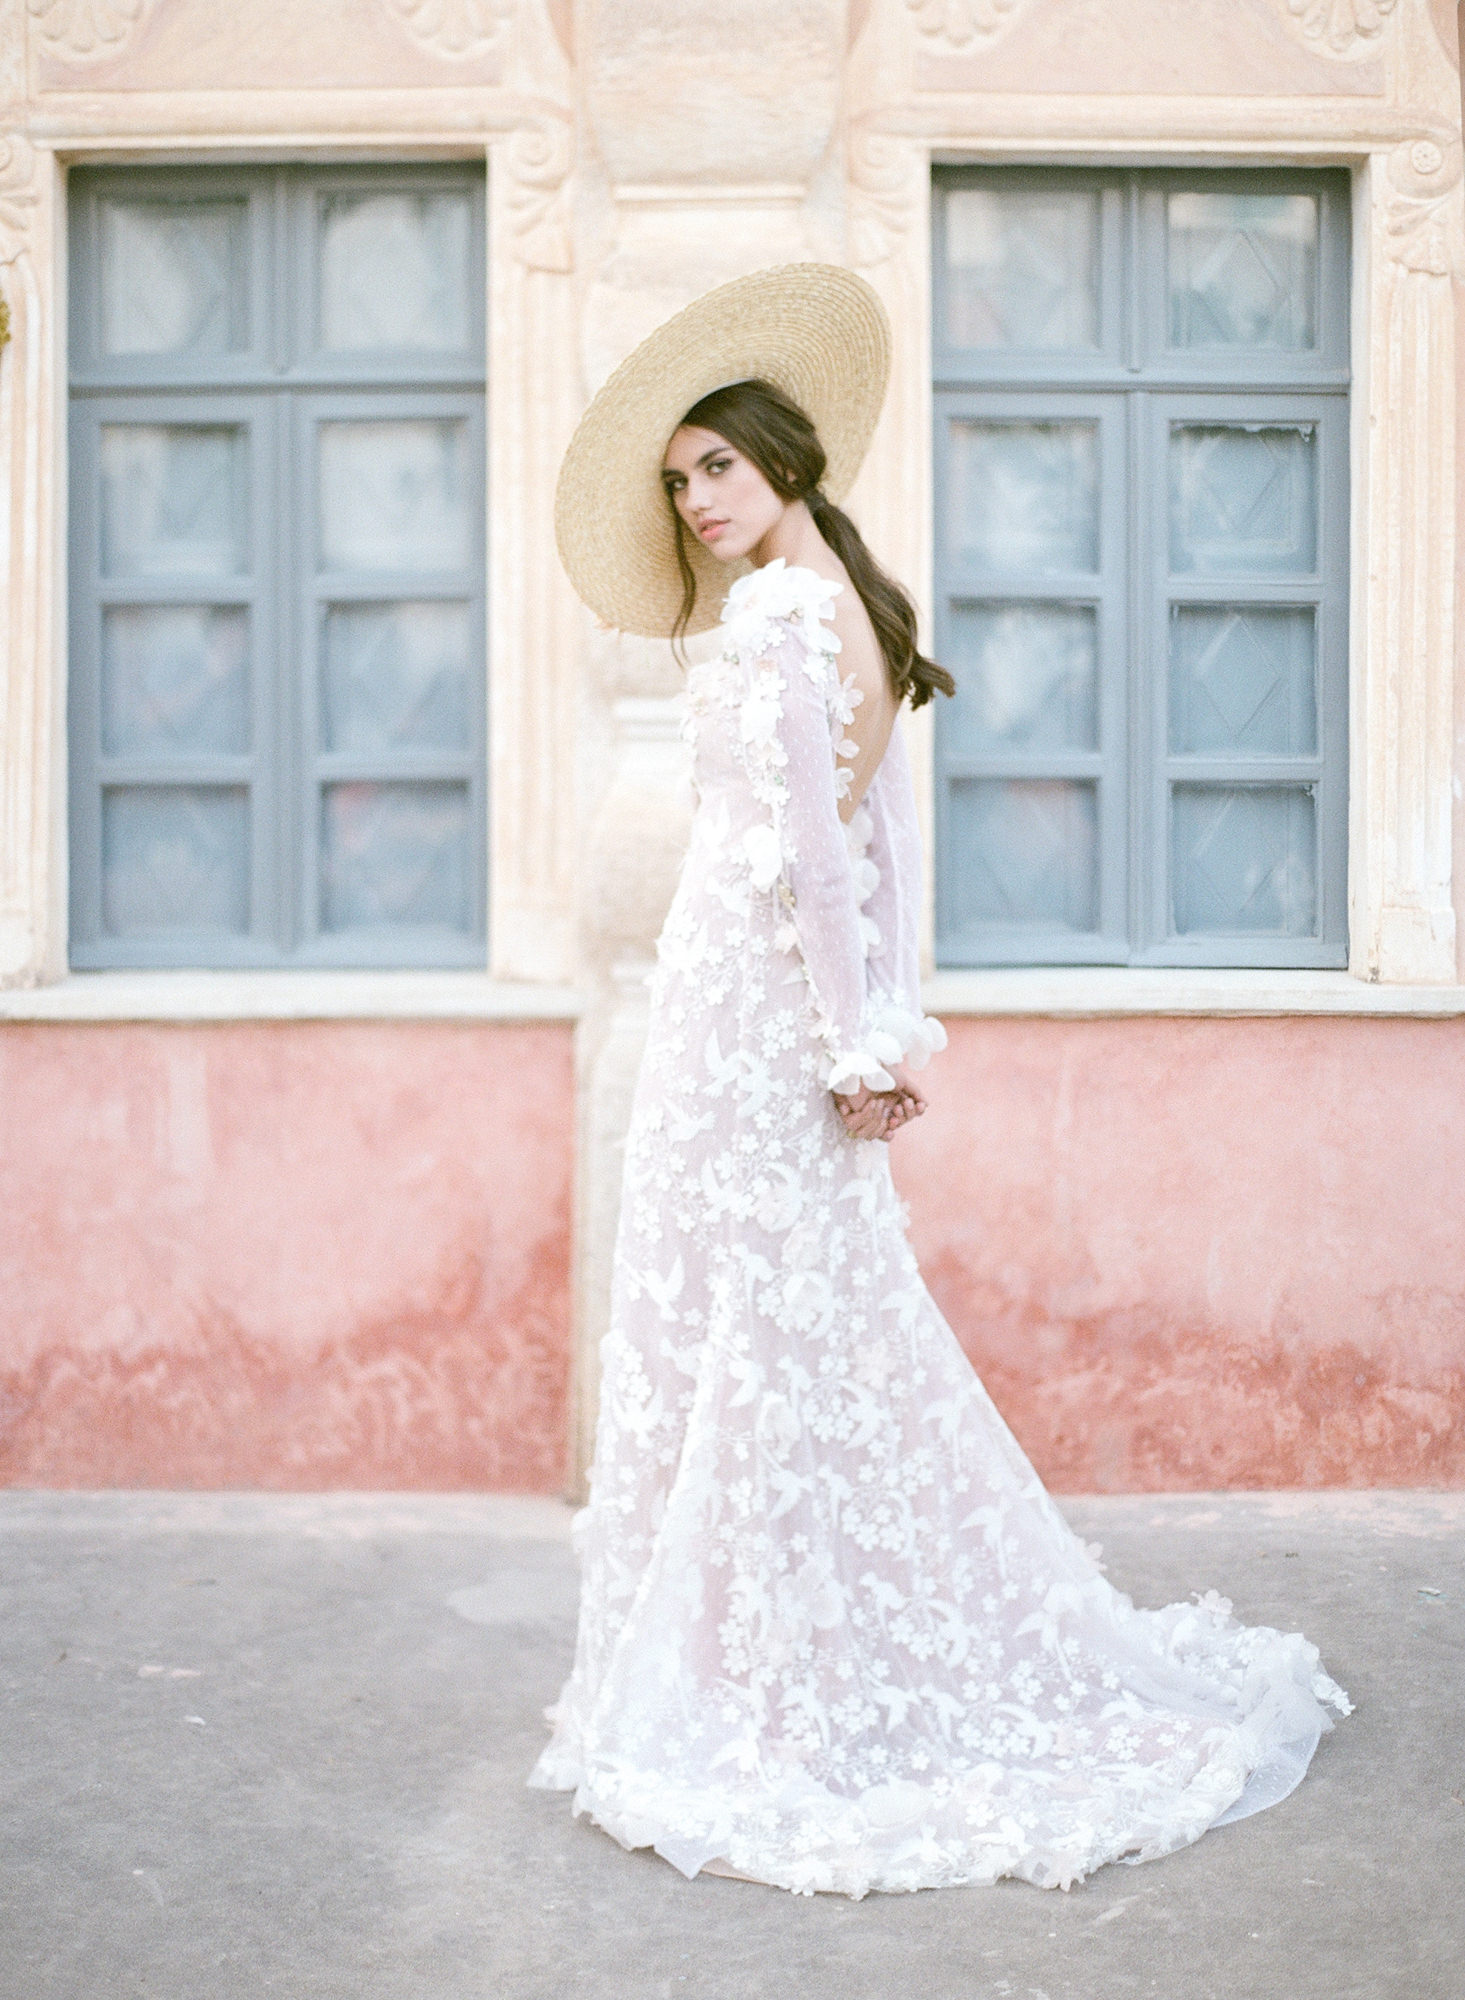 Bride in lace gown wearing a big straw hat - photo by Gianluca Adiovaso